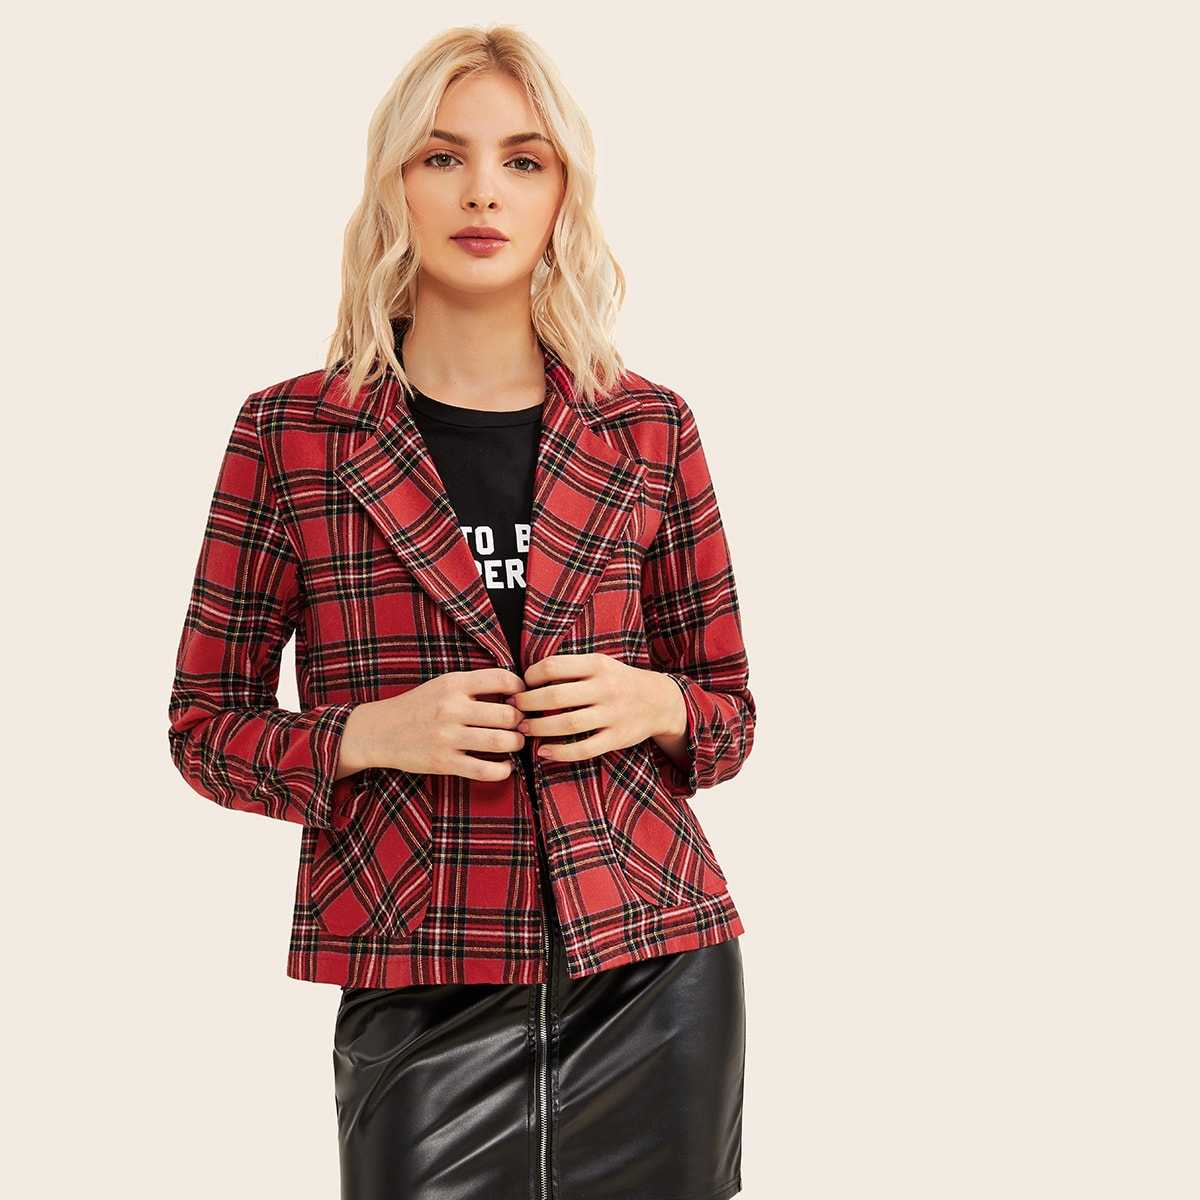 Plaid Notched Neck Dual Pocket Blazer in Red by ROMWE on GOOFASH